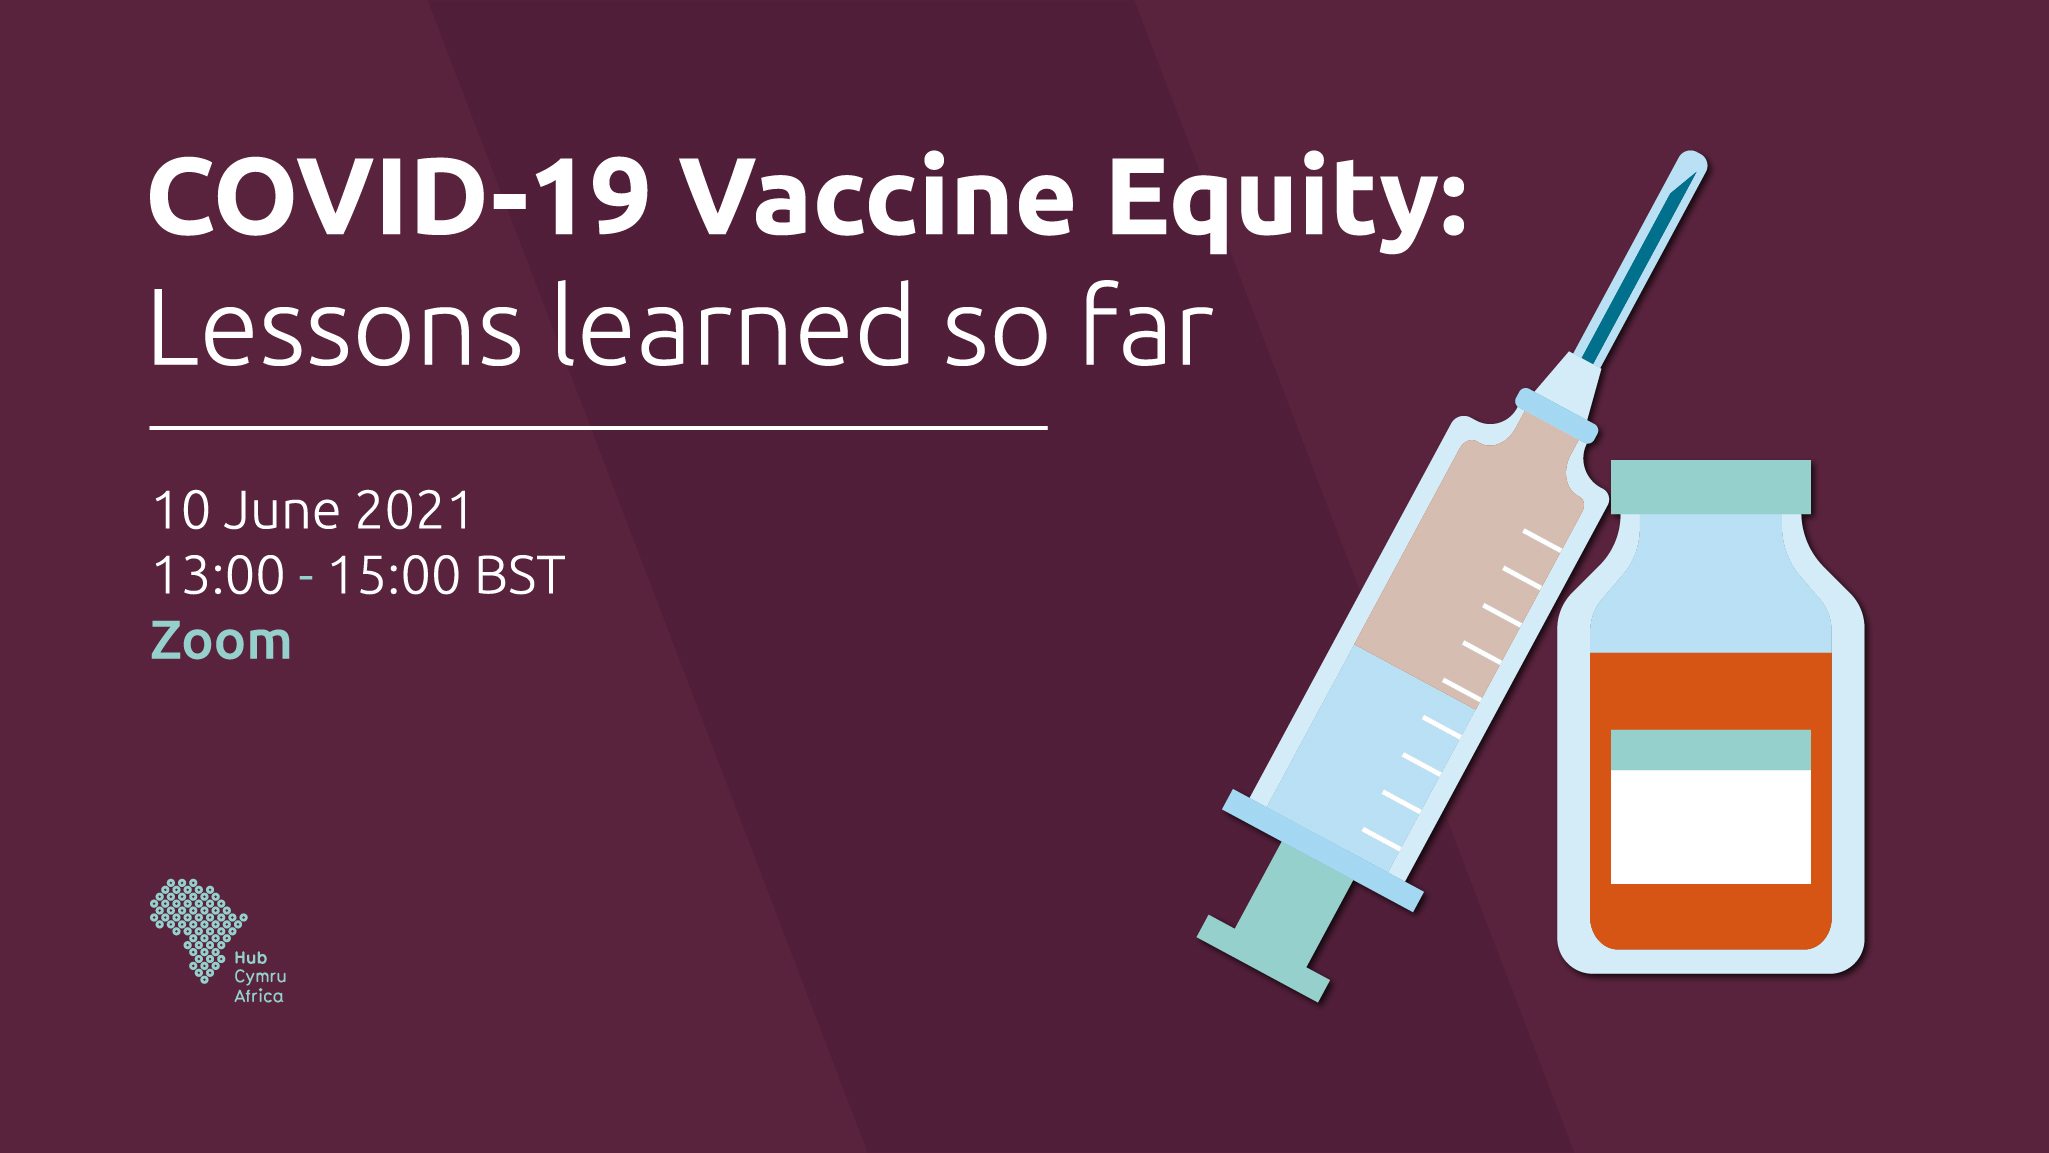 EVENT - COVID-19 Vaccine Equity: Lessons learned so far